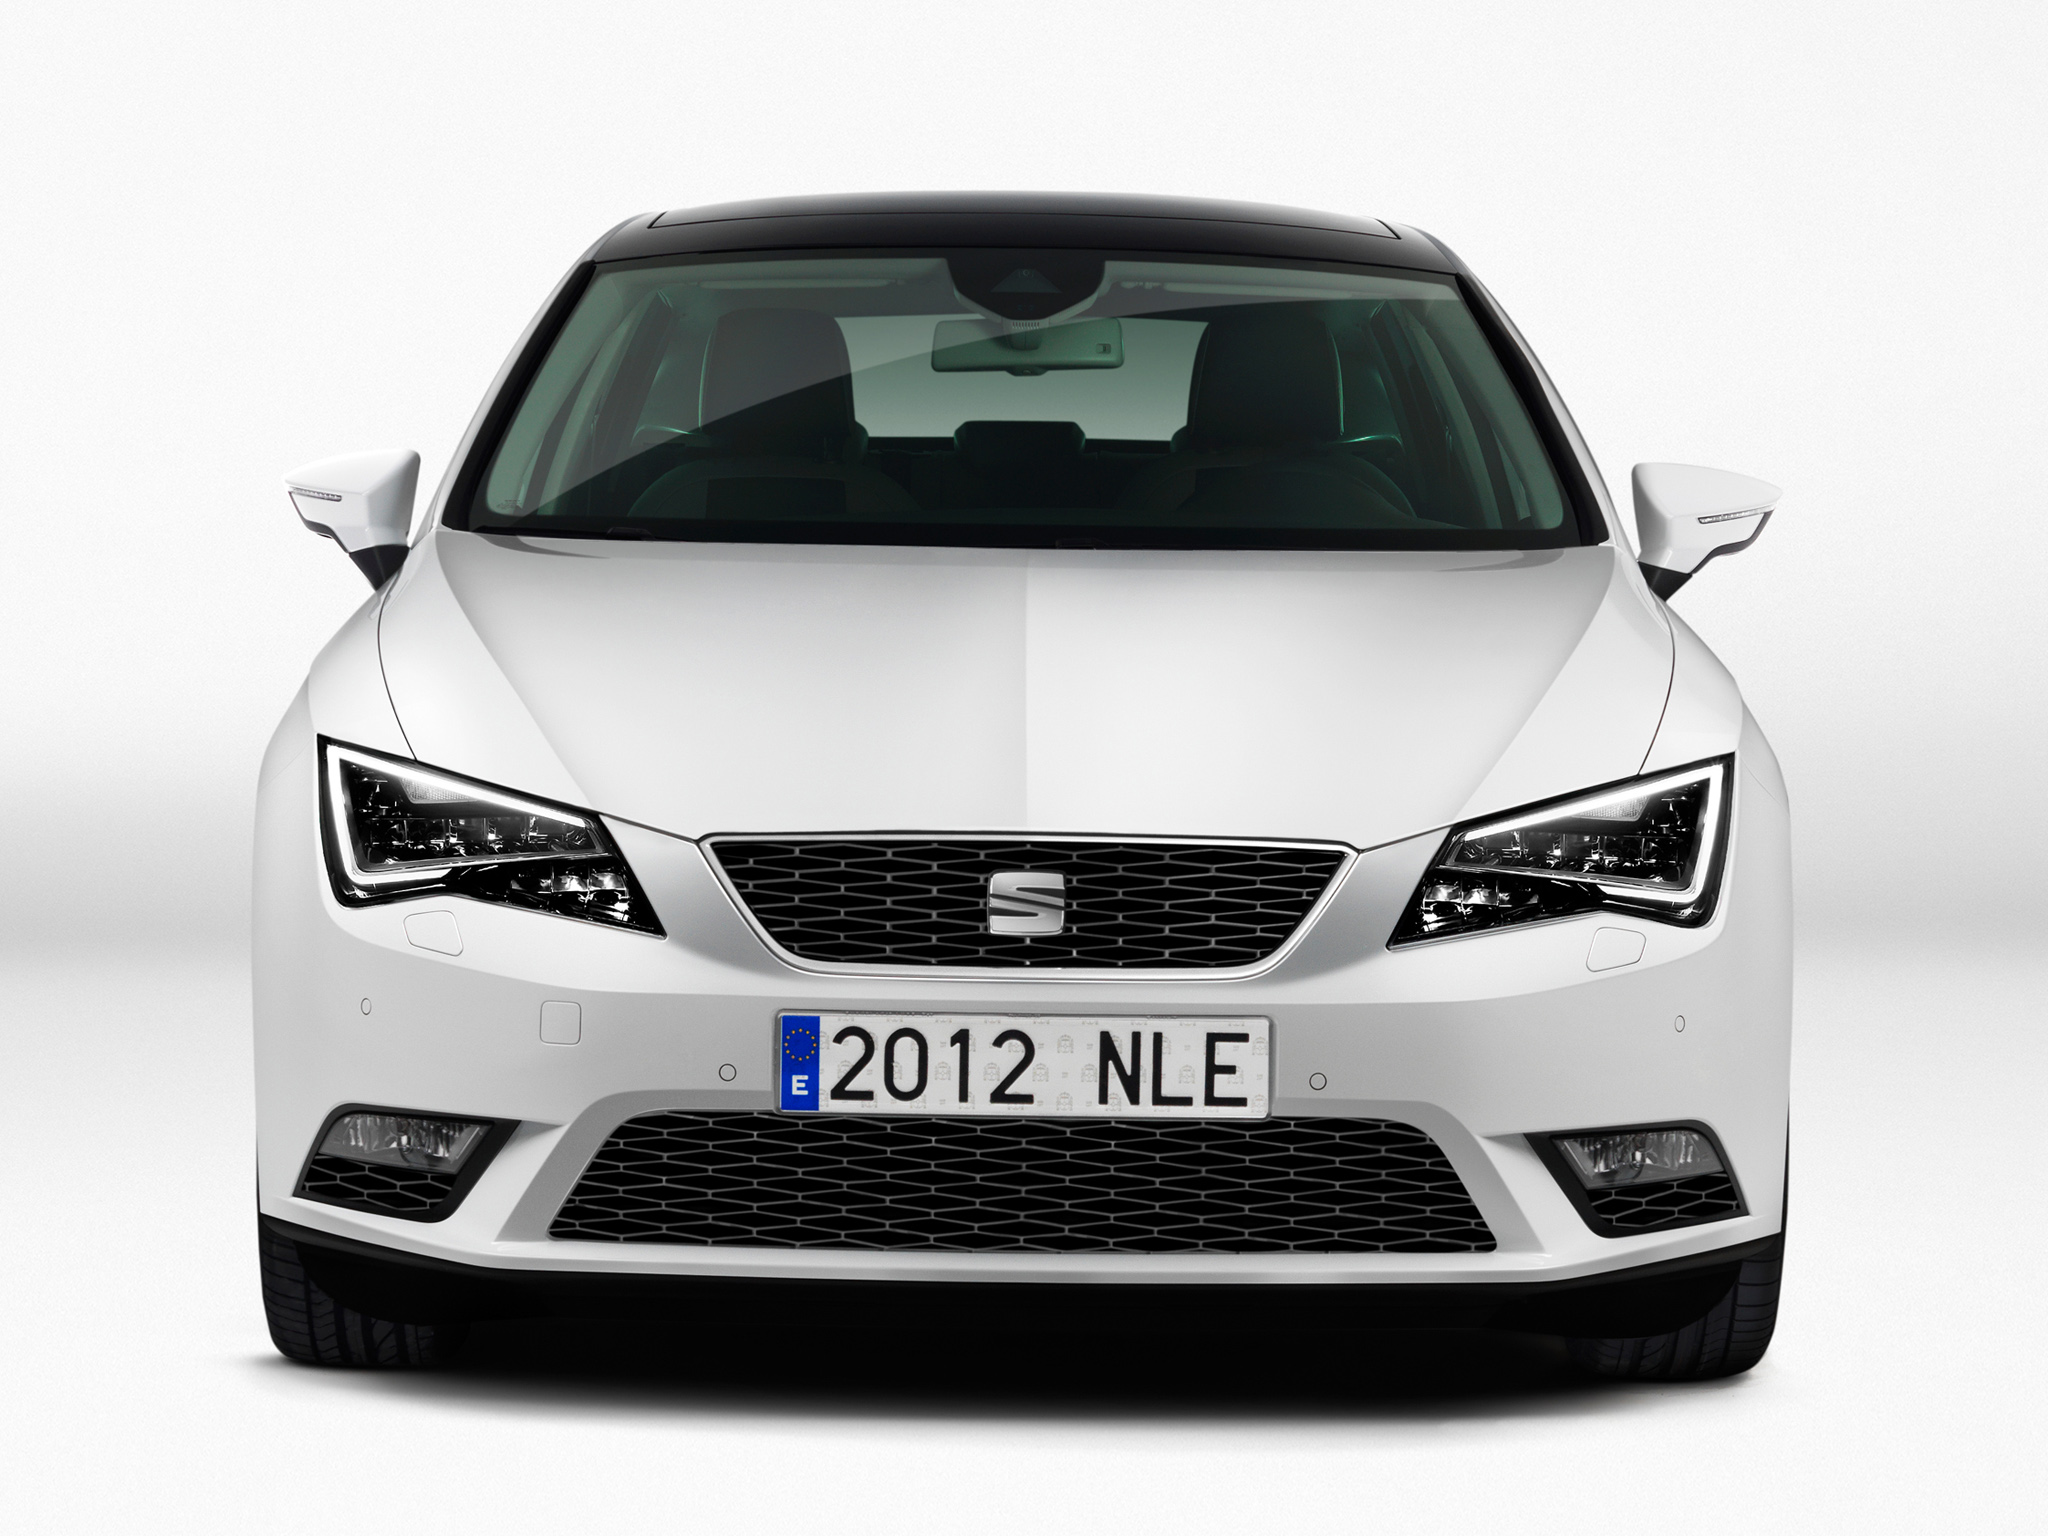 2012 seat leon iii pictures information and specs. Black Bedroom Furniture Sets. Home Design Ideas